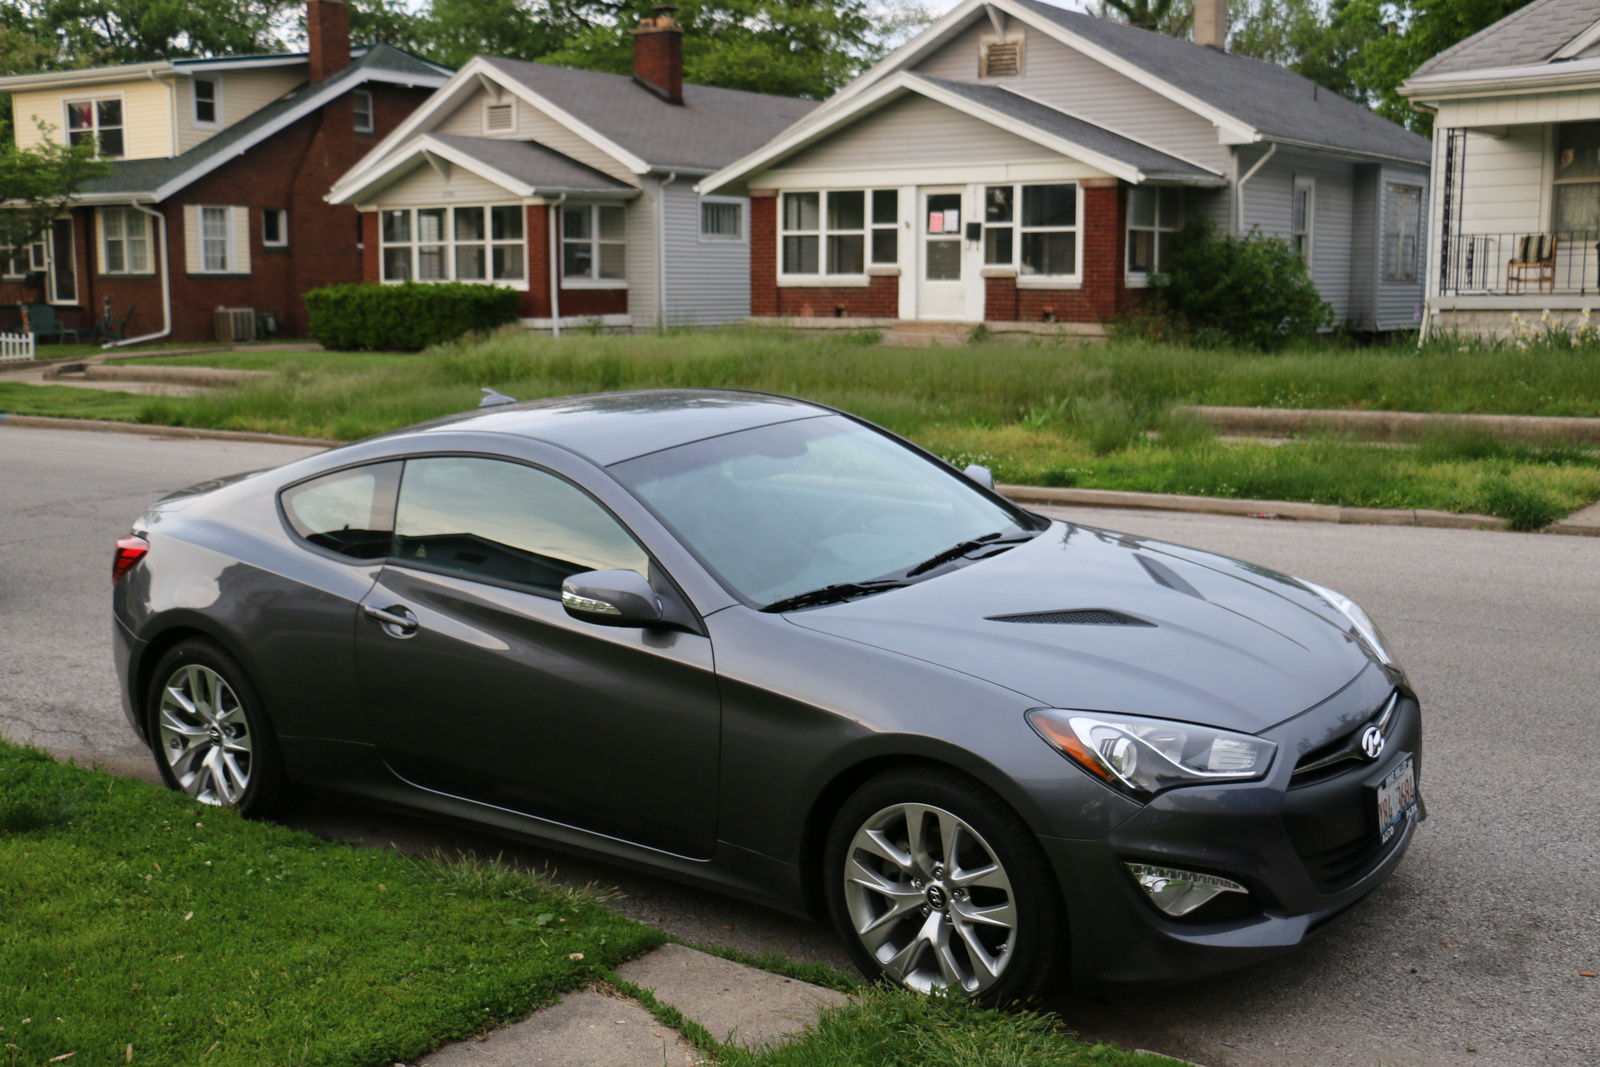 hyundai genesis coupe - photo #10